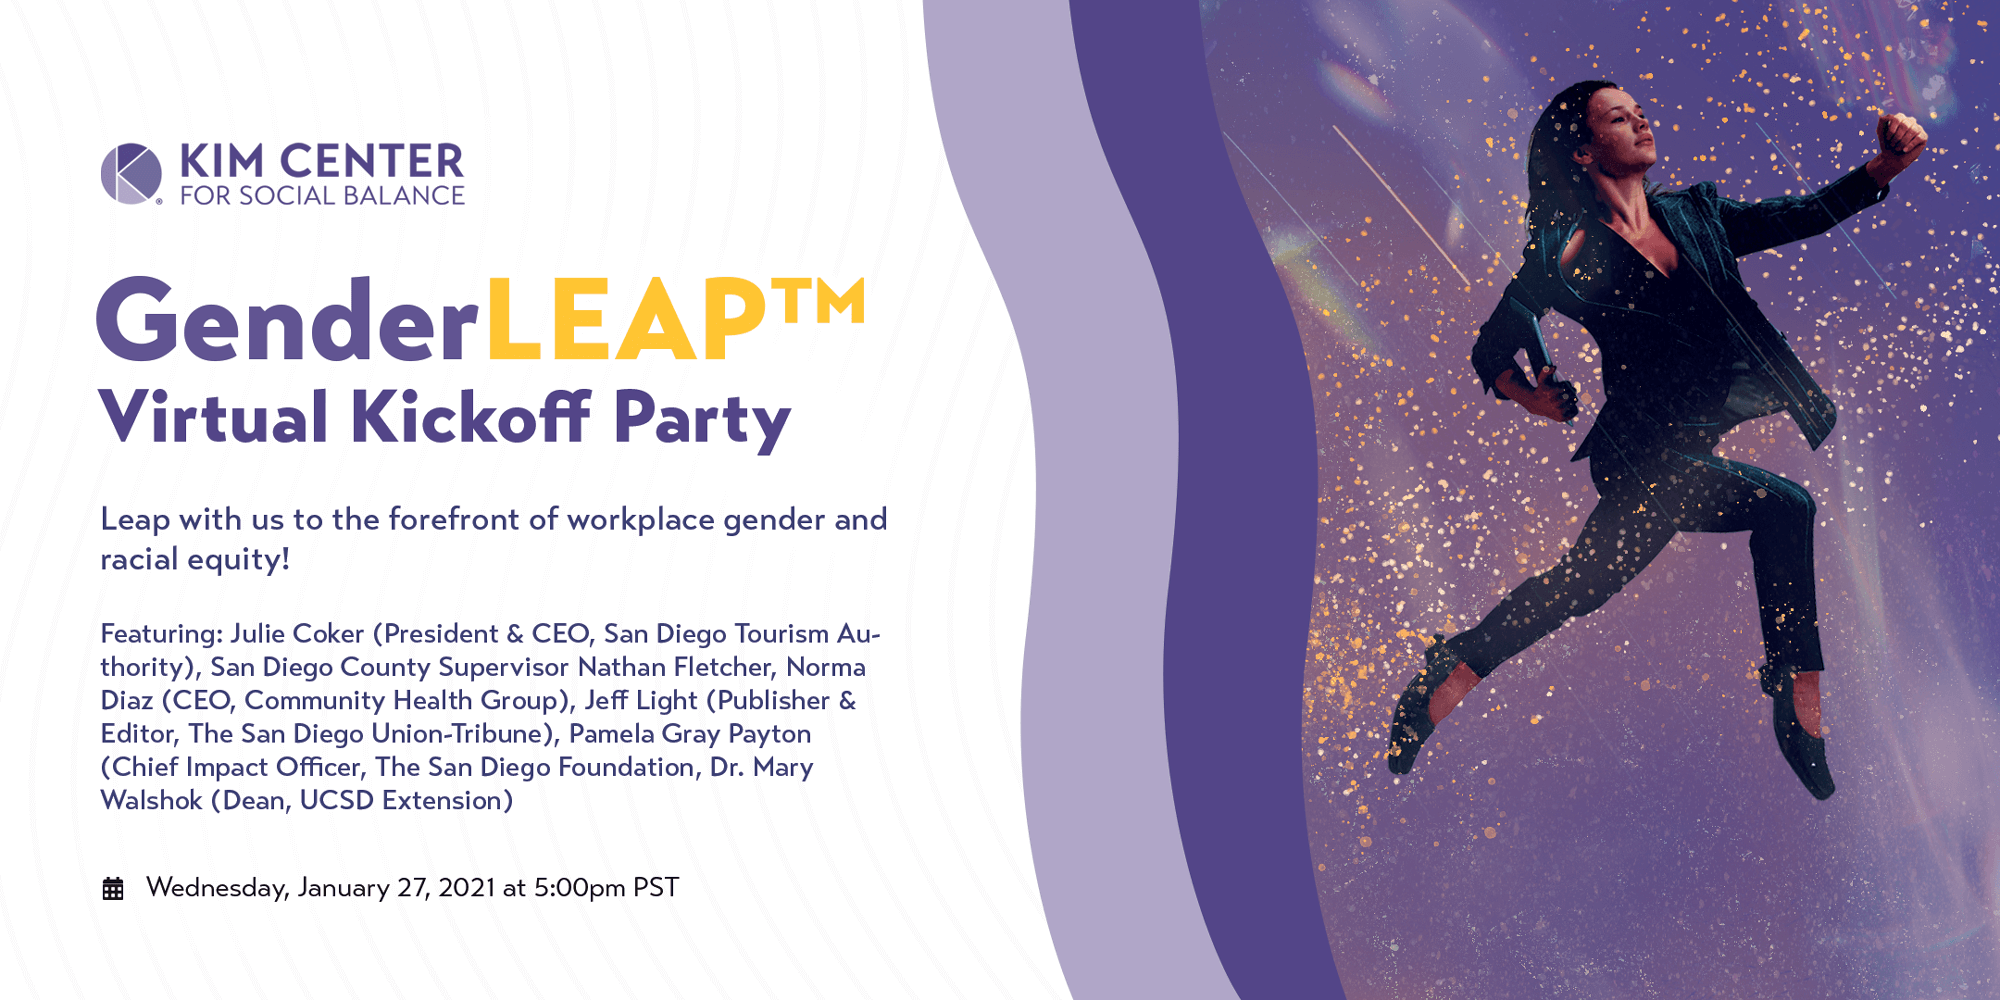 GenderLeap Kickoff Party Details